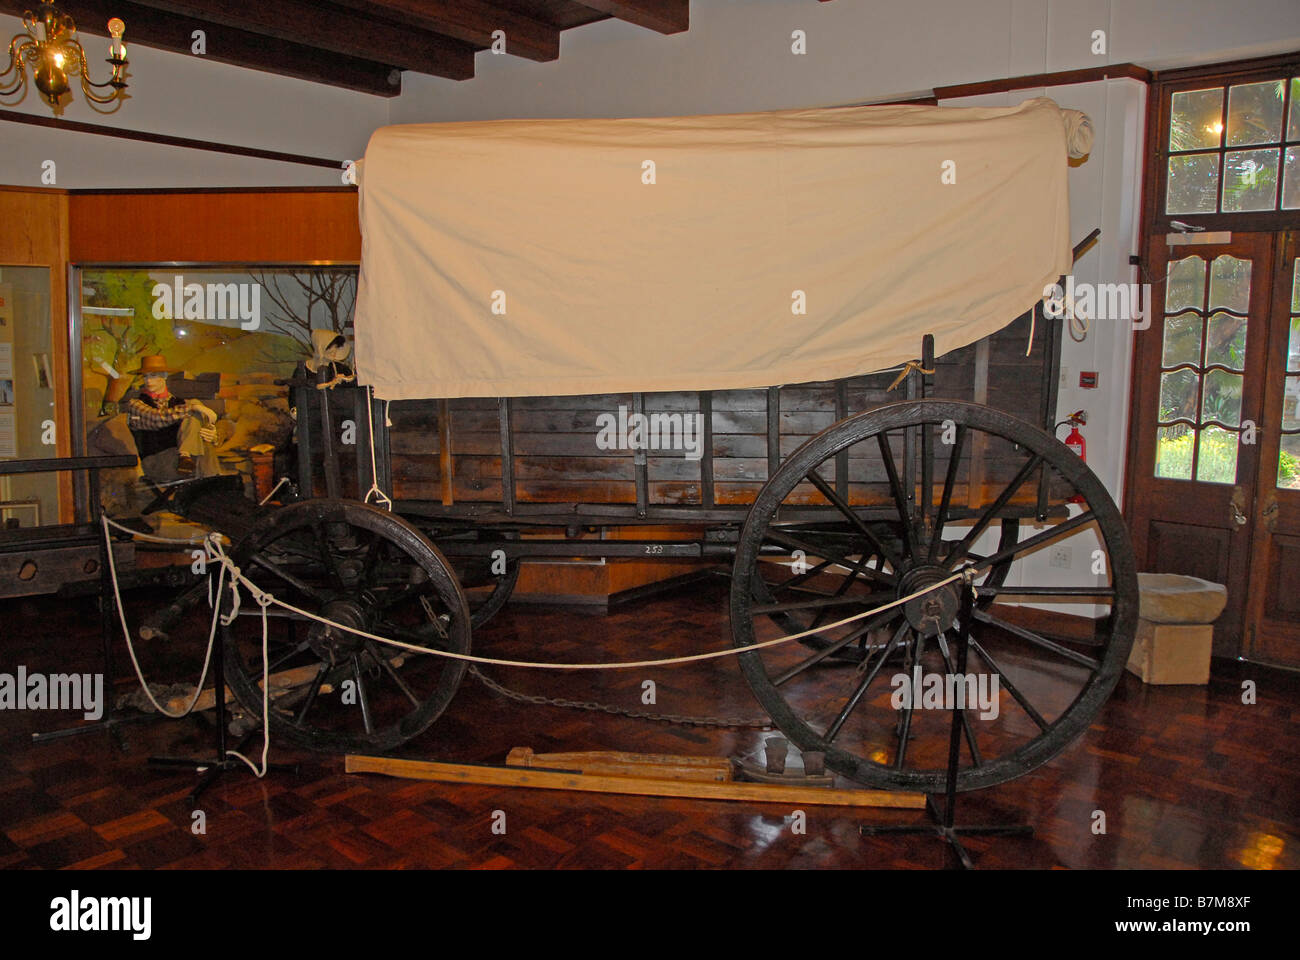 Historical ox wagon used during the Great Trek from the Cape Province of South Africa to the interior in 1836 - Stock Image